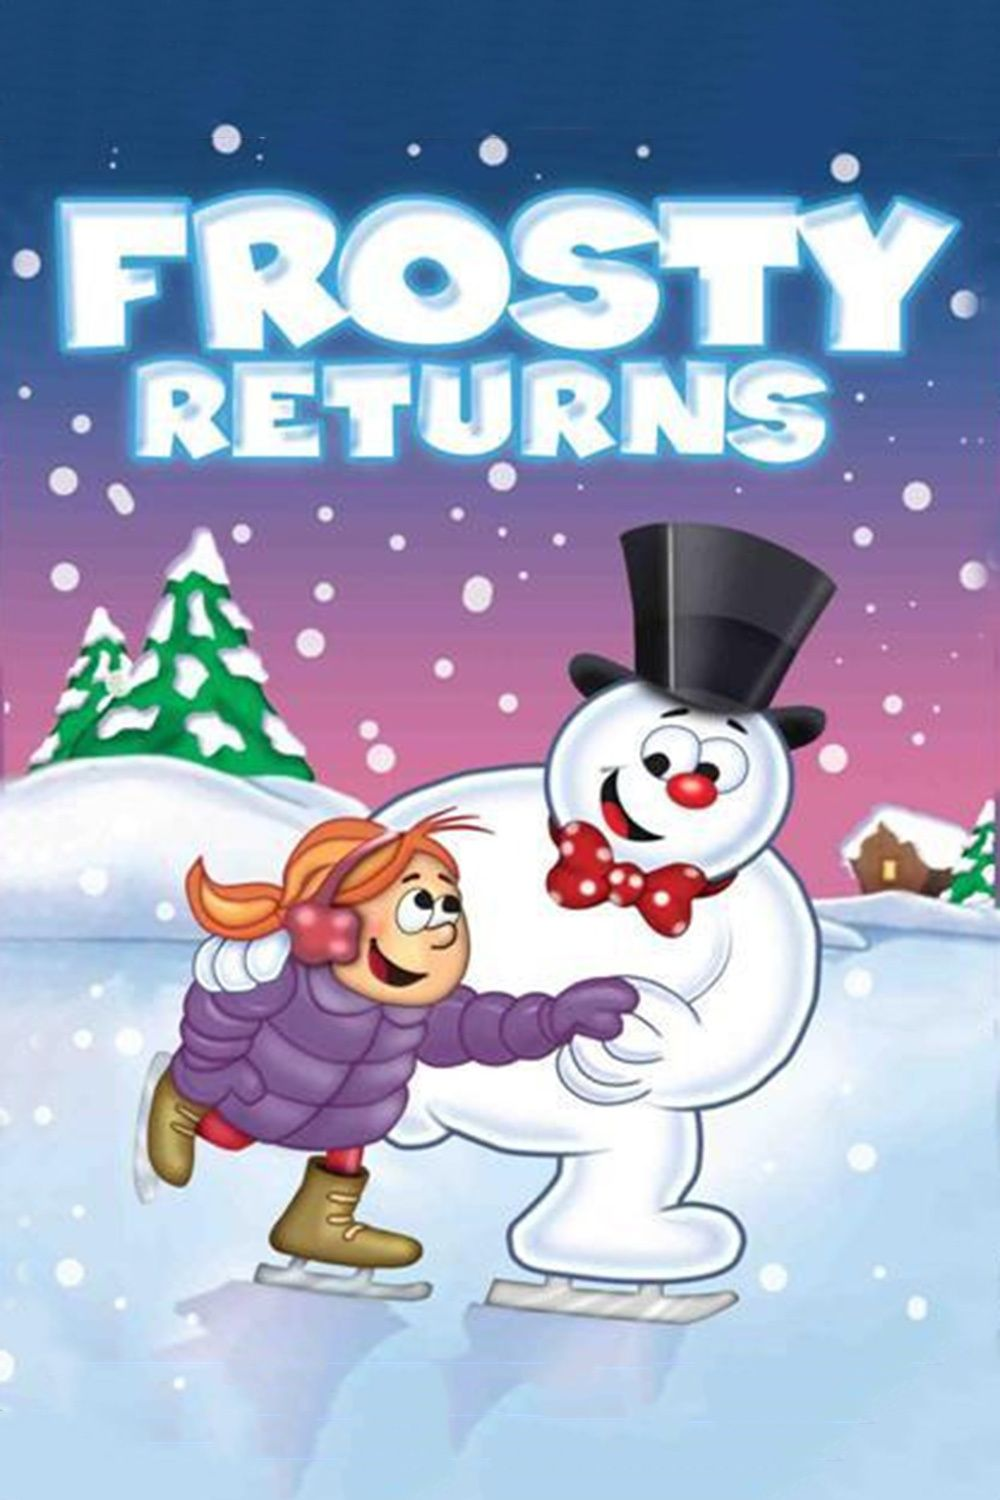 Frosty The Snowman Movie Cover Images Google Search Best Christmas Movies Animated Christmas Movies The Snowman Movie